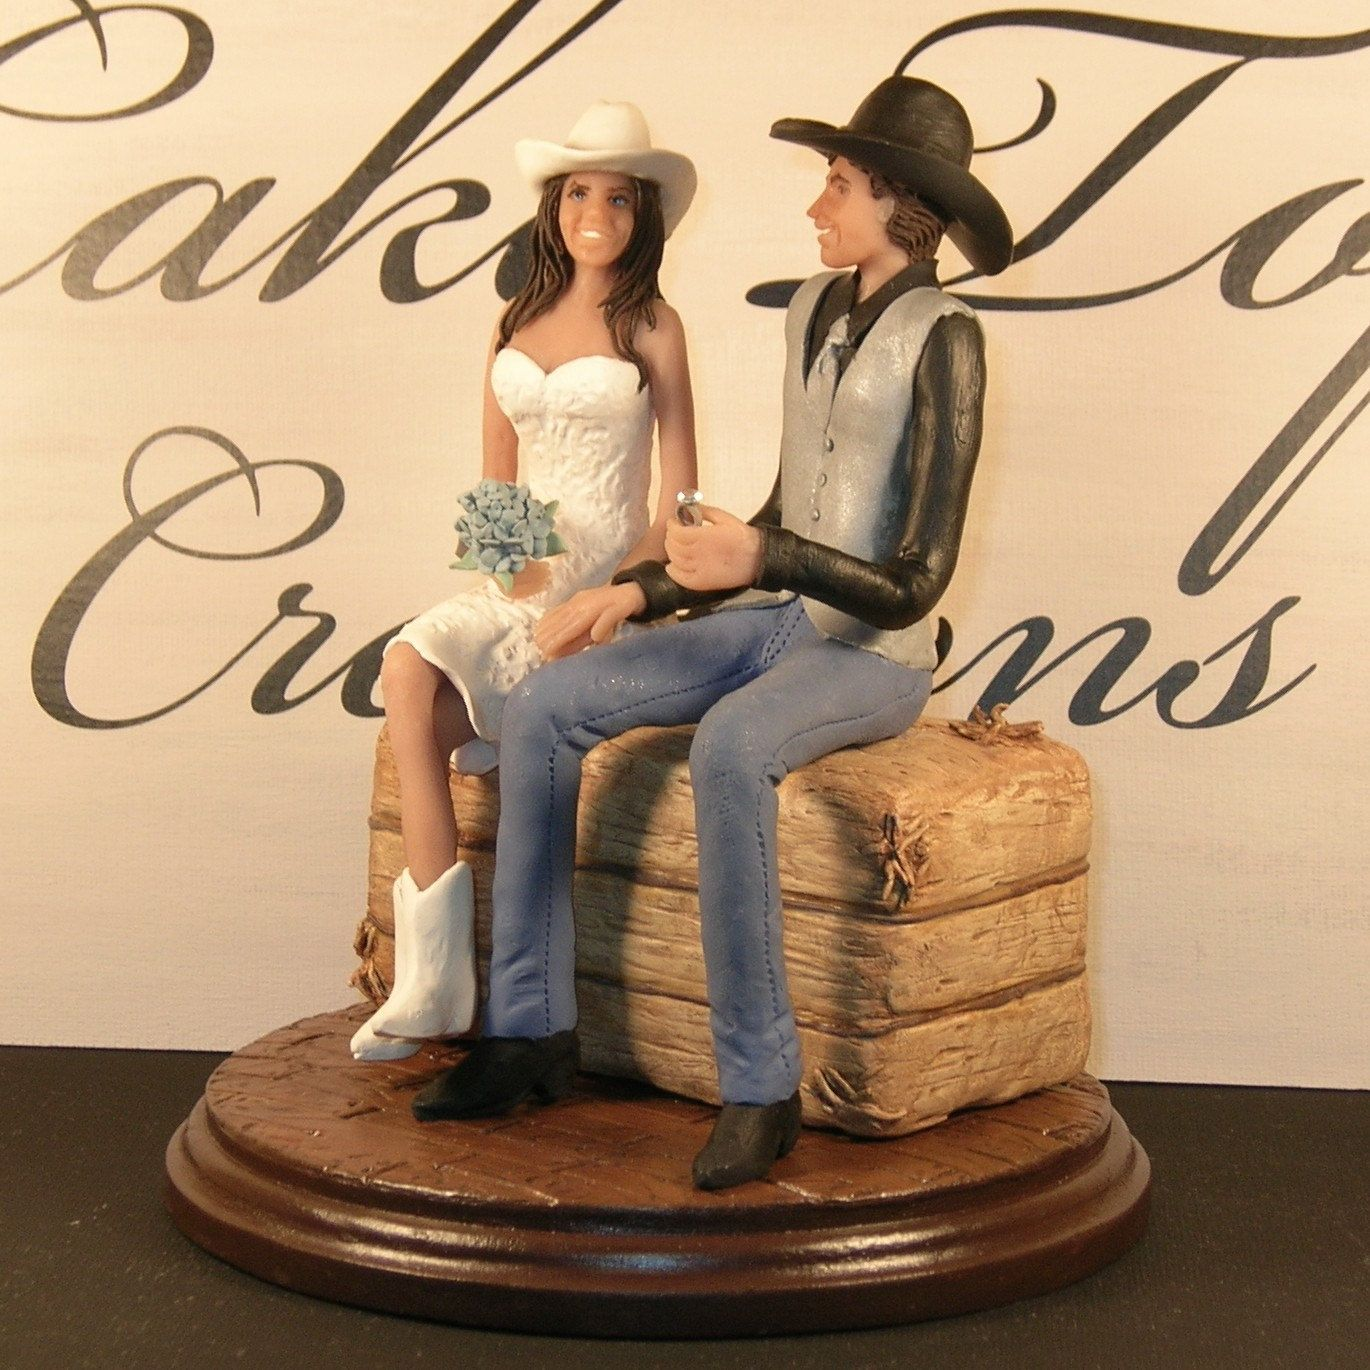 western wedding cake toppers bride and groom